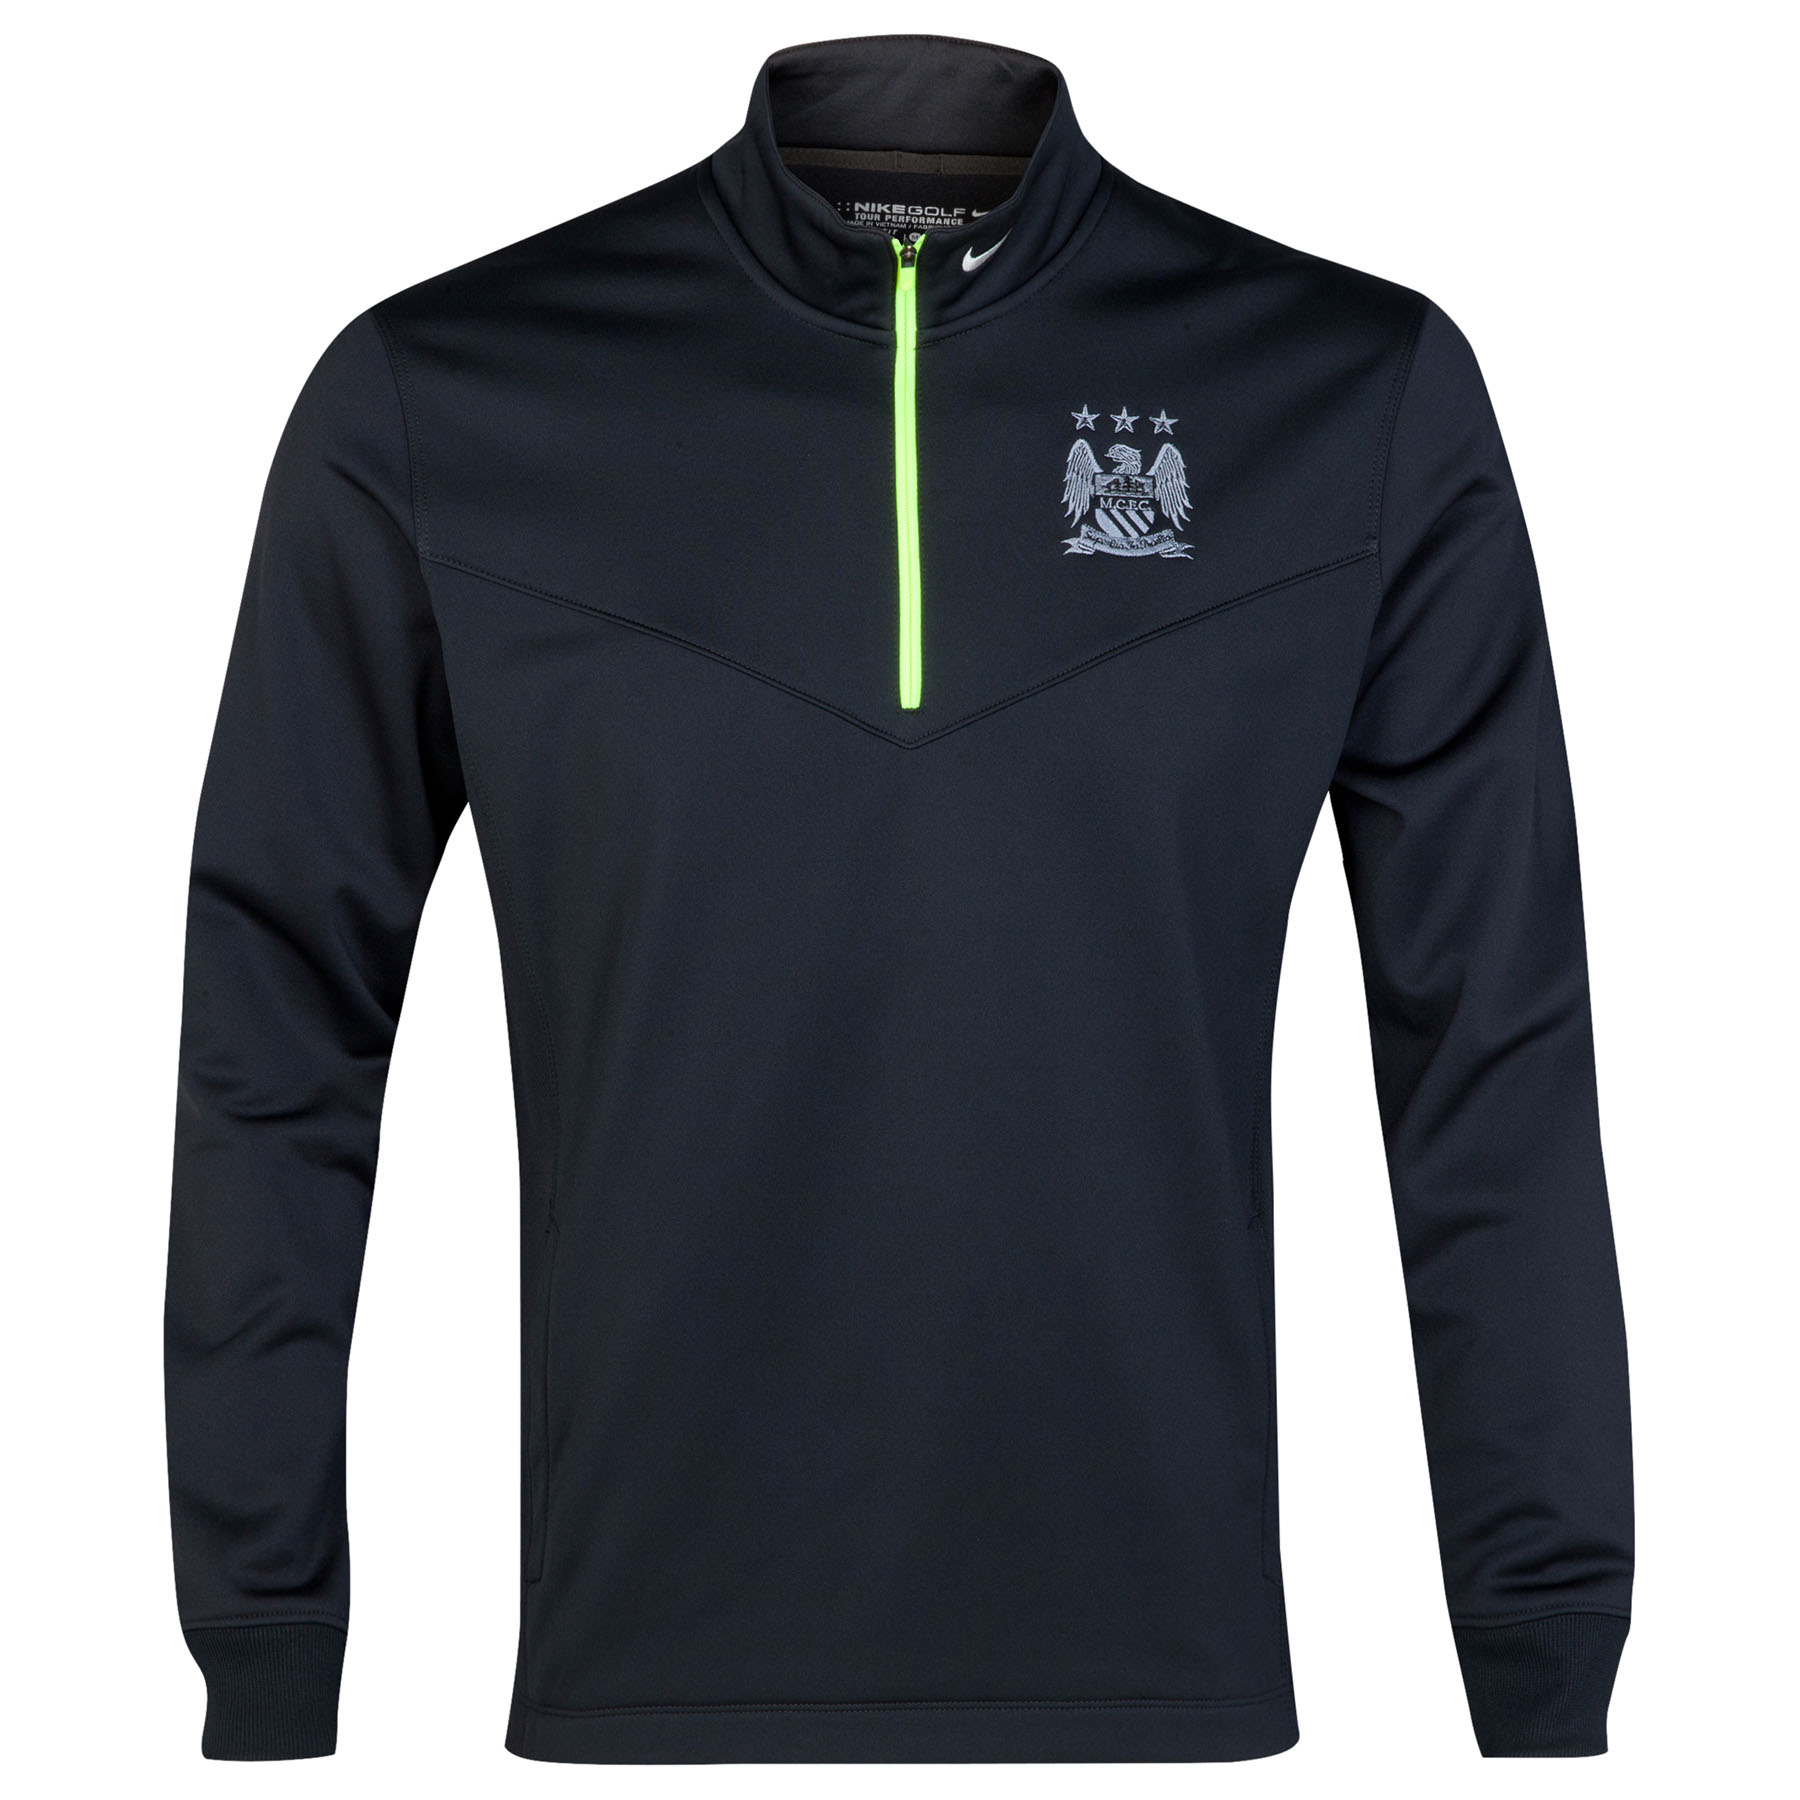 Manchester City Thermal Half Zip Top Black